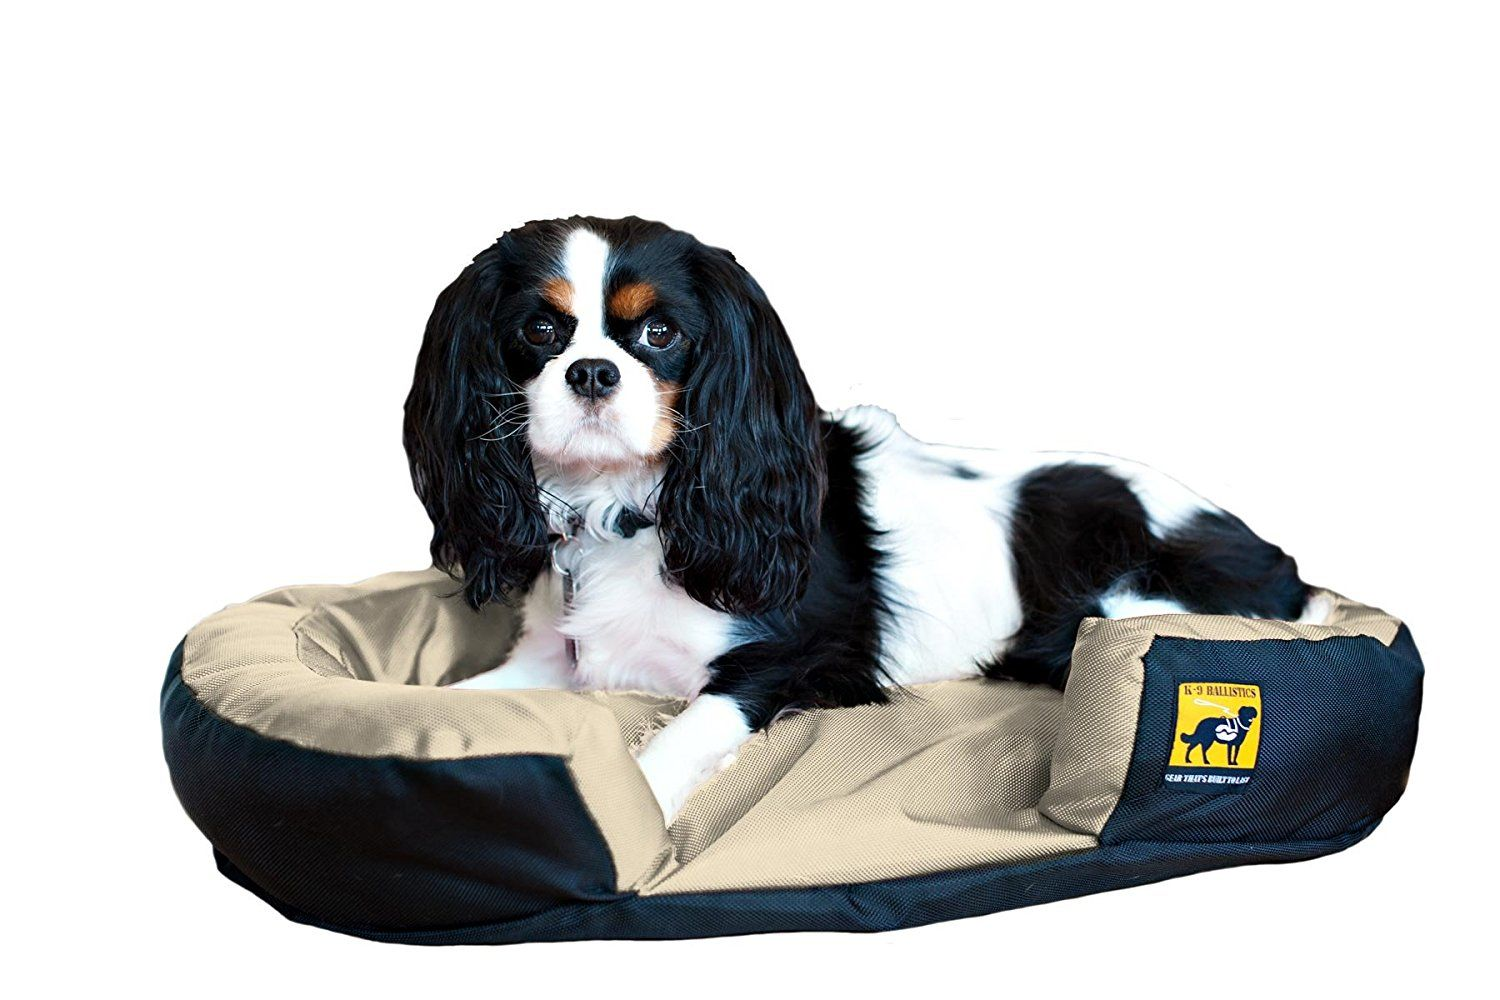 Pin On Dog Beds And Furniture